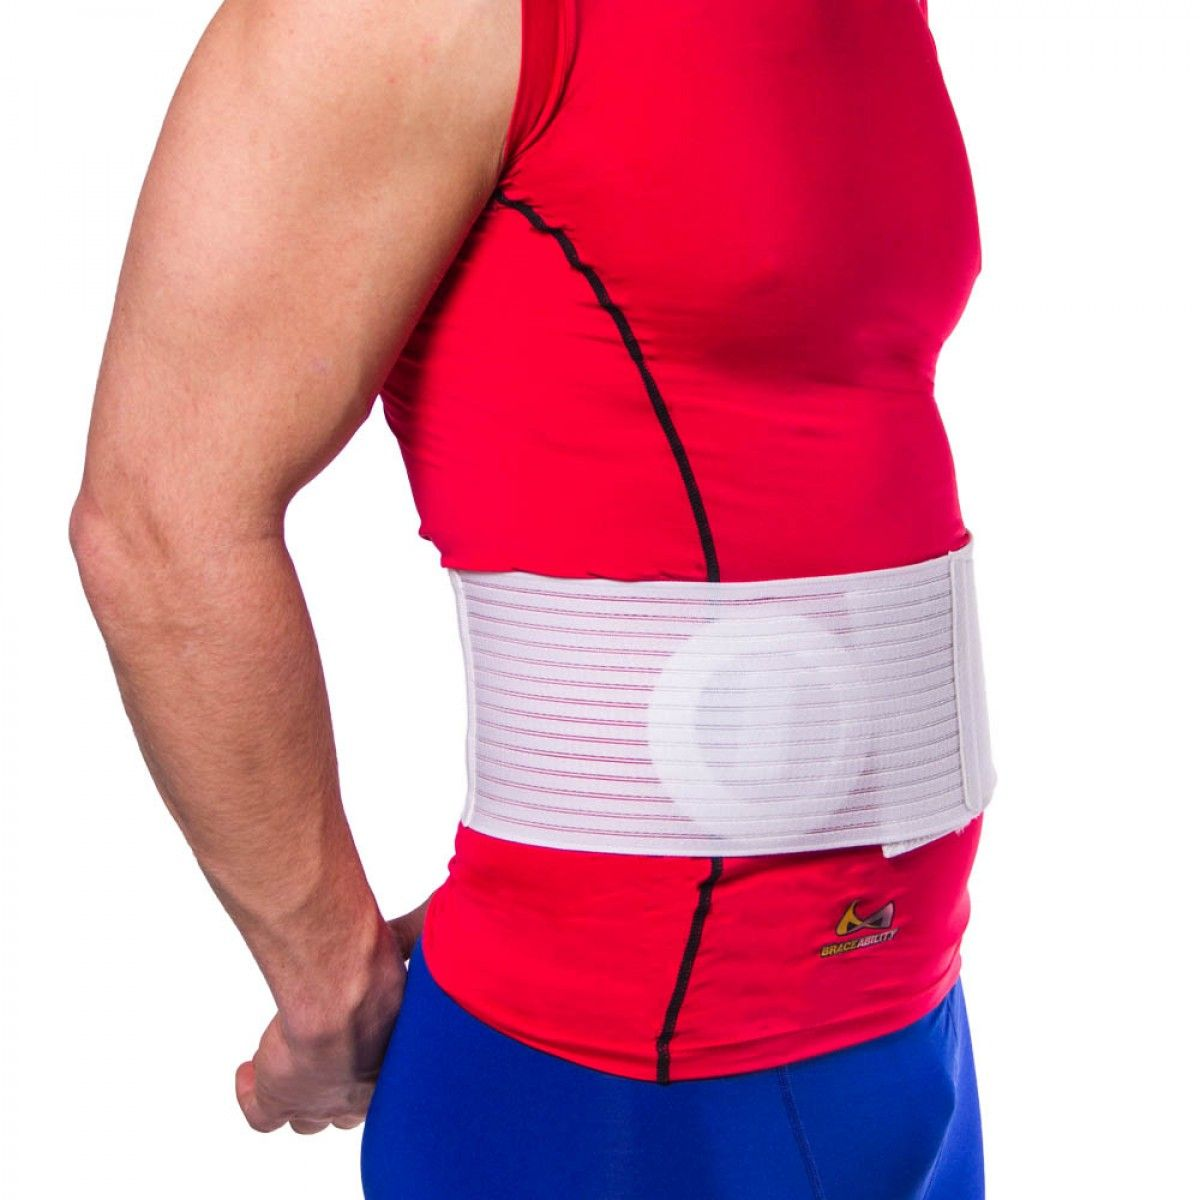 daf1788c932 Incisional Hernia Scar Rupture Protection Belt - This abdomen scar  protection belt is composed of comfortable